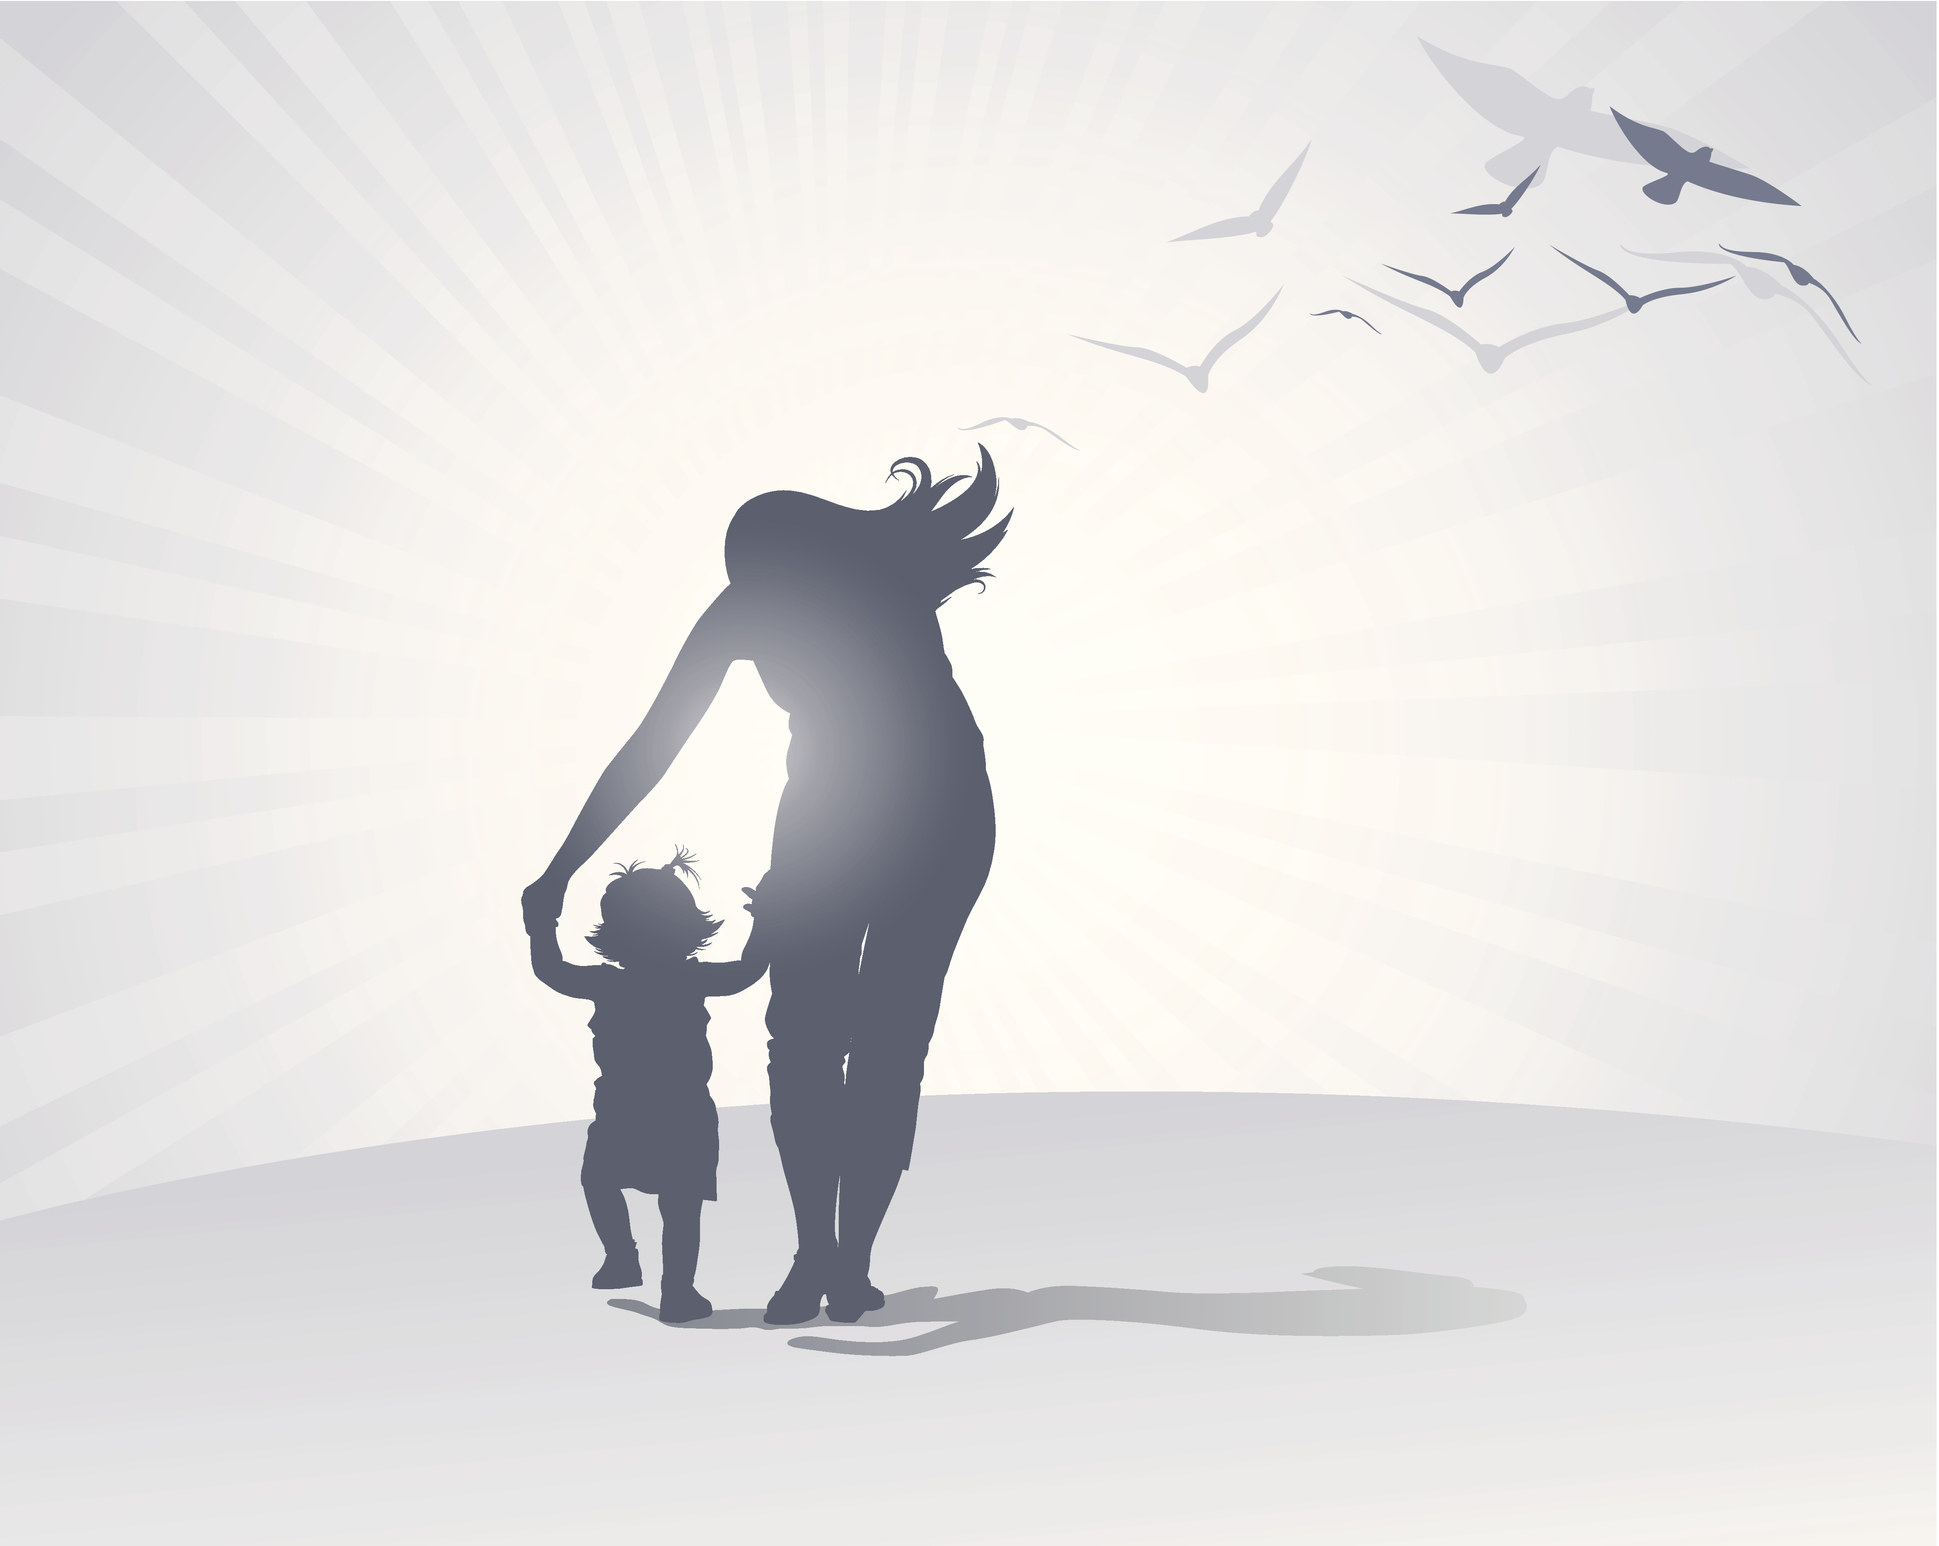 The silhouette of a mother leading a little girl